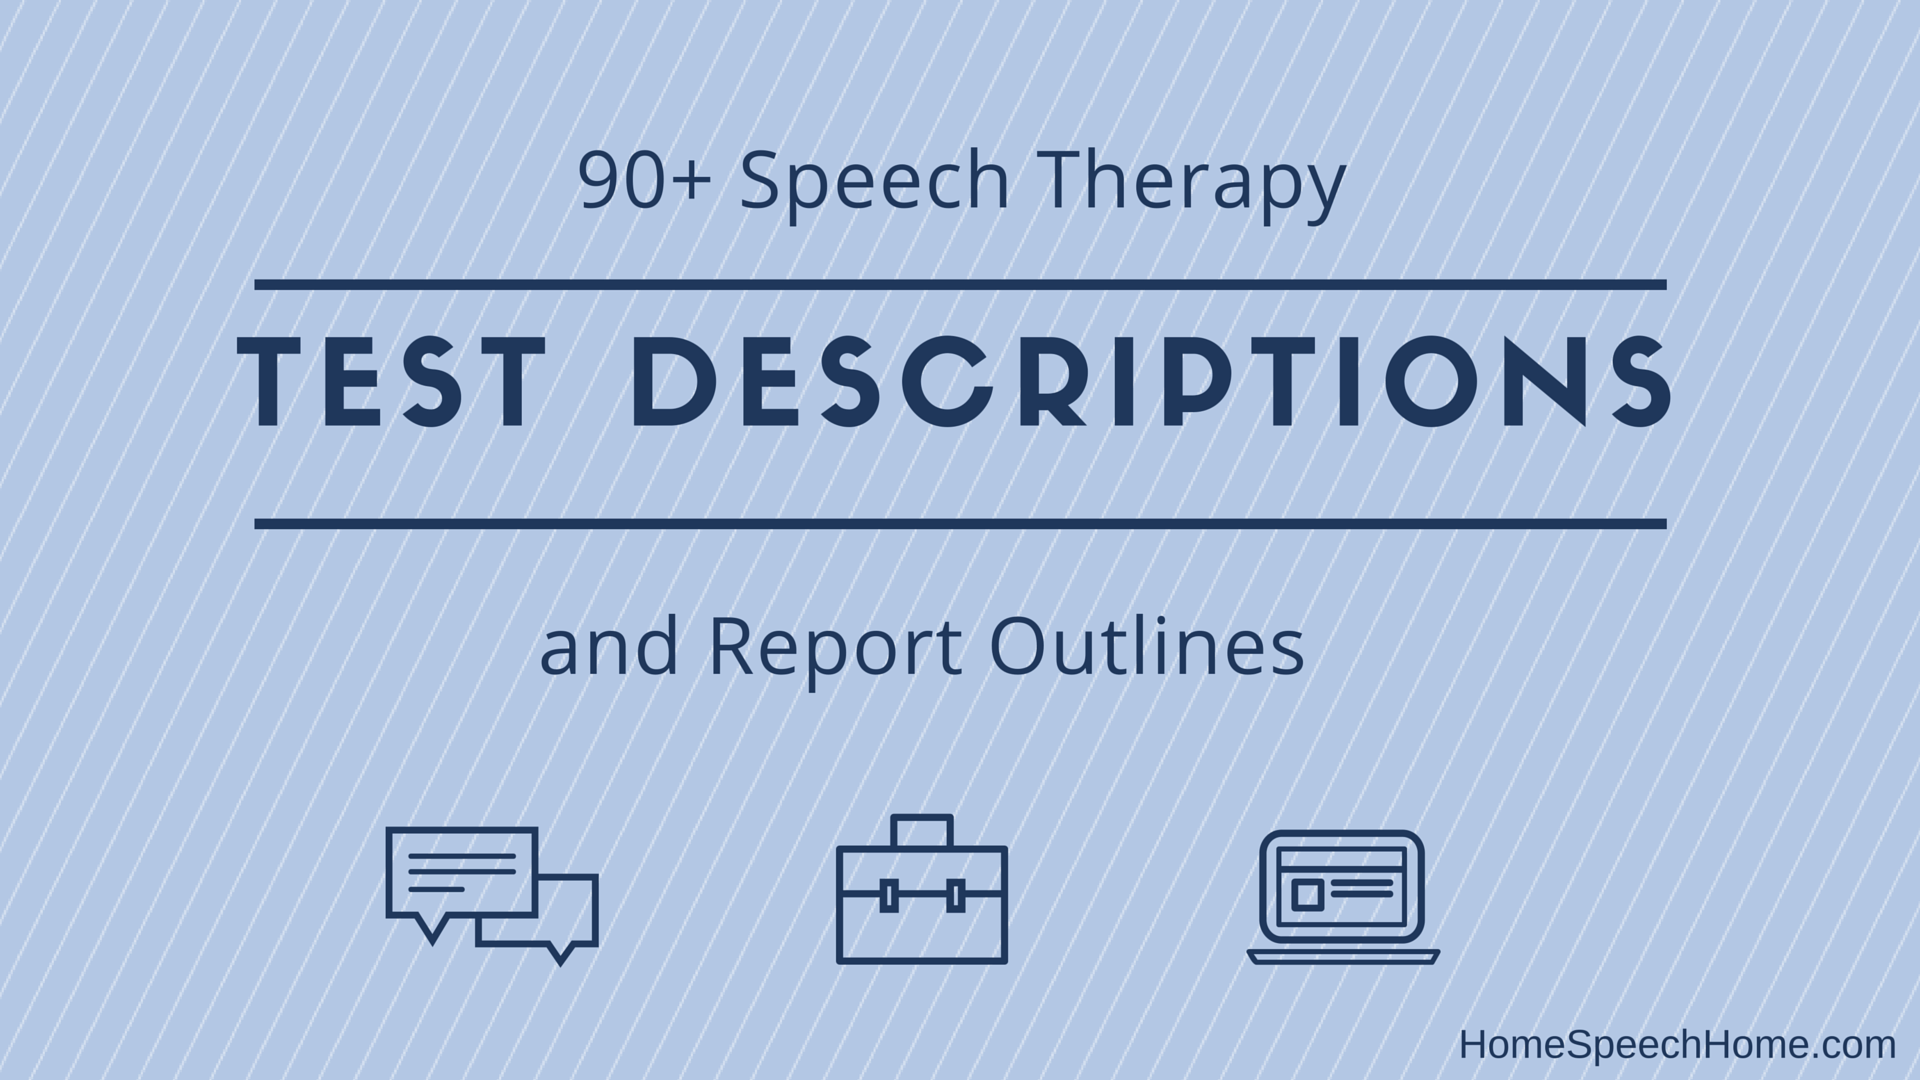 Speech Therapy Test Descriptions | HomeSpeechHome.com